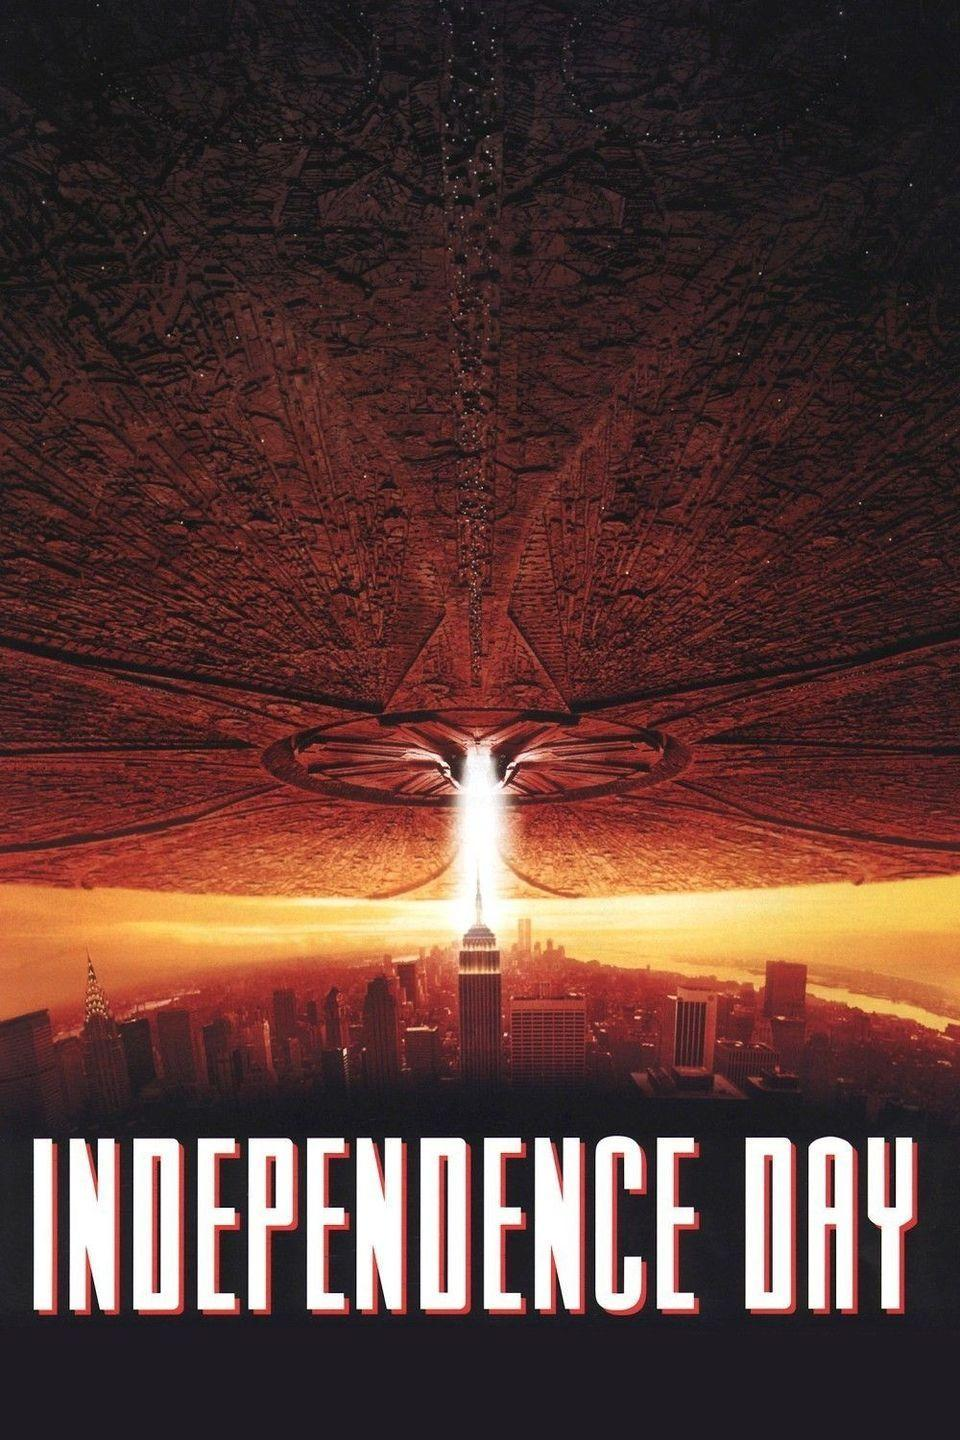 """<p>No list of 4th of July movies would be complete without <em>Independence Day. </em>This action-packed movie is about aliens attacking the planet, and a team of human survivors who are determined to save Earth. <br><br><a class=""""link rapid-noclick-resp"""" href=""""https://www.amazon.com/Independence-Day-Bill-Pullman/dp/B000I9UA30/ref=sr_1_1?tag=syn-yahoo-20&ascsubtag=%5Bartid%7C10070.g.36156094%5Bsrc%7Cyahoo-us"""" rel=""""nofollow noopener"""" target=""""_blank"""" data-ylk=""""slk:STREAM NOW"""">STREAM NOW</a></p><p>__________________________________________________________</p><p>Want to make your holidays shine? You're in luck! <a href=""""https://subscribe.hearstmags.com/subscribe/womansday/253396?source=wdy_edit_article"""" rel=""""nofollow noopener"""" target=""""_blank"""" data-ylk=""""slk:Subscribe to Woman's Day"""" class=""""link rapid-noclick-resp"""">Subscribe to Woman's Day</a> today and get <strong>73% off your first 12 issues</strong>. And while you're at it, <a href=""""https://subscribe.hearstmags.com/circulation/shared/email/newsletters/signup/wdy-su01.html"""" rel=""""nofollow noopener"""" target=""""_blank"""" data-ylk=""""slk:sign up for our FREE newsletter"""" class=""""link rapid-noclick-resp"""">sign up for our FREE newsletter</a> for even more of the Woman's Day content you want.</p>"""